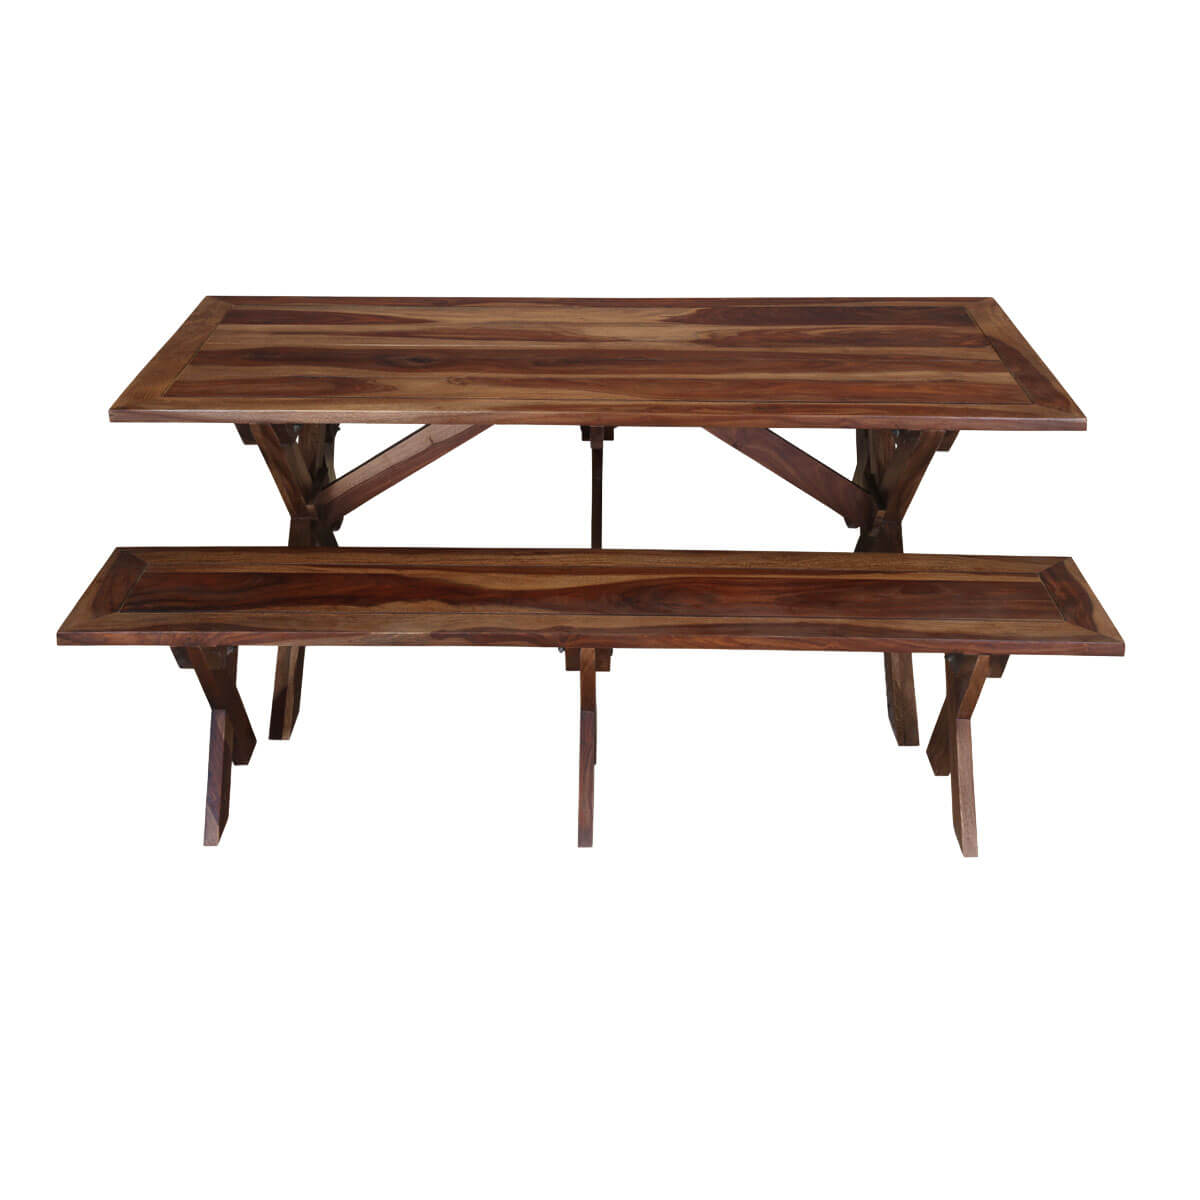 Traditional american picnic style rustic dining table with for Traditional dining table